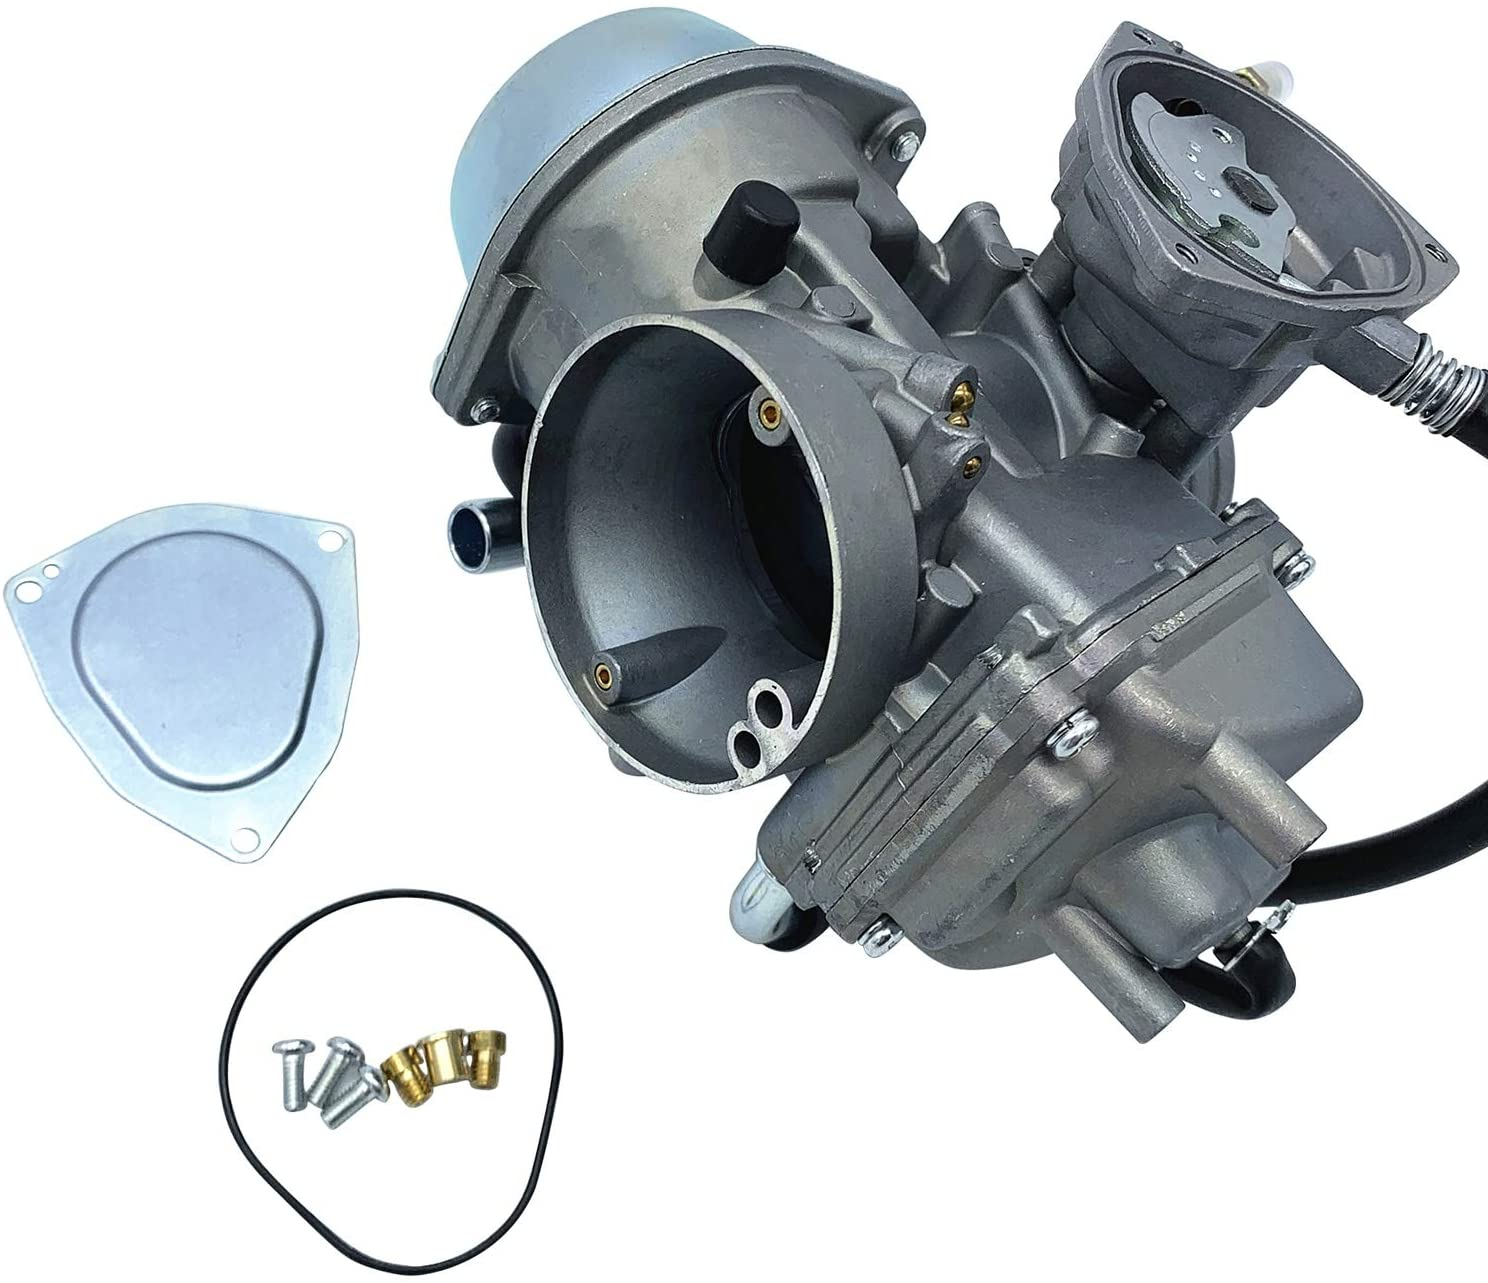 Xiteman Carburetor For Yamaha Grizzly 660 YFM660 2002 2003 2004 2005 2006 2007 2008 Carb NEW FREE FUEL FILTER AND STICKER